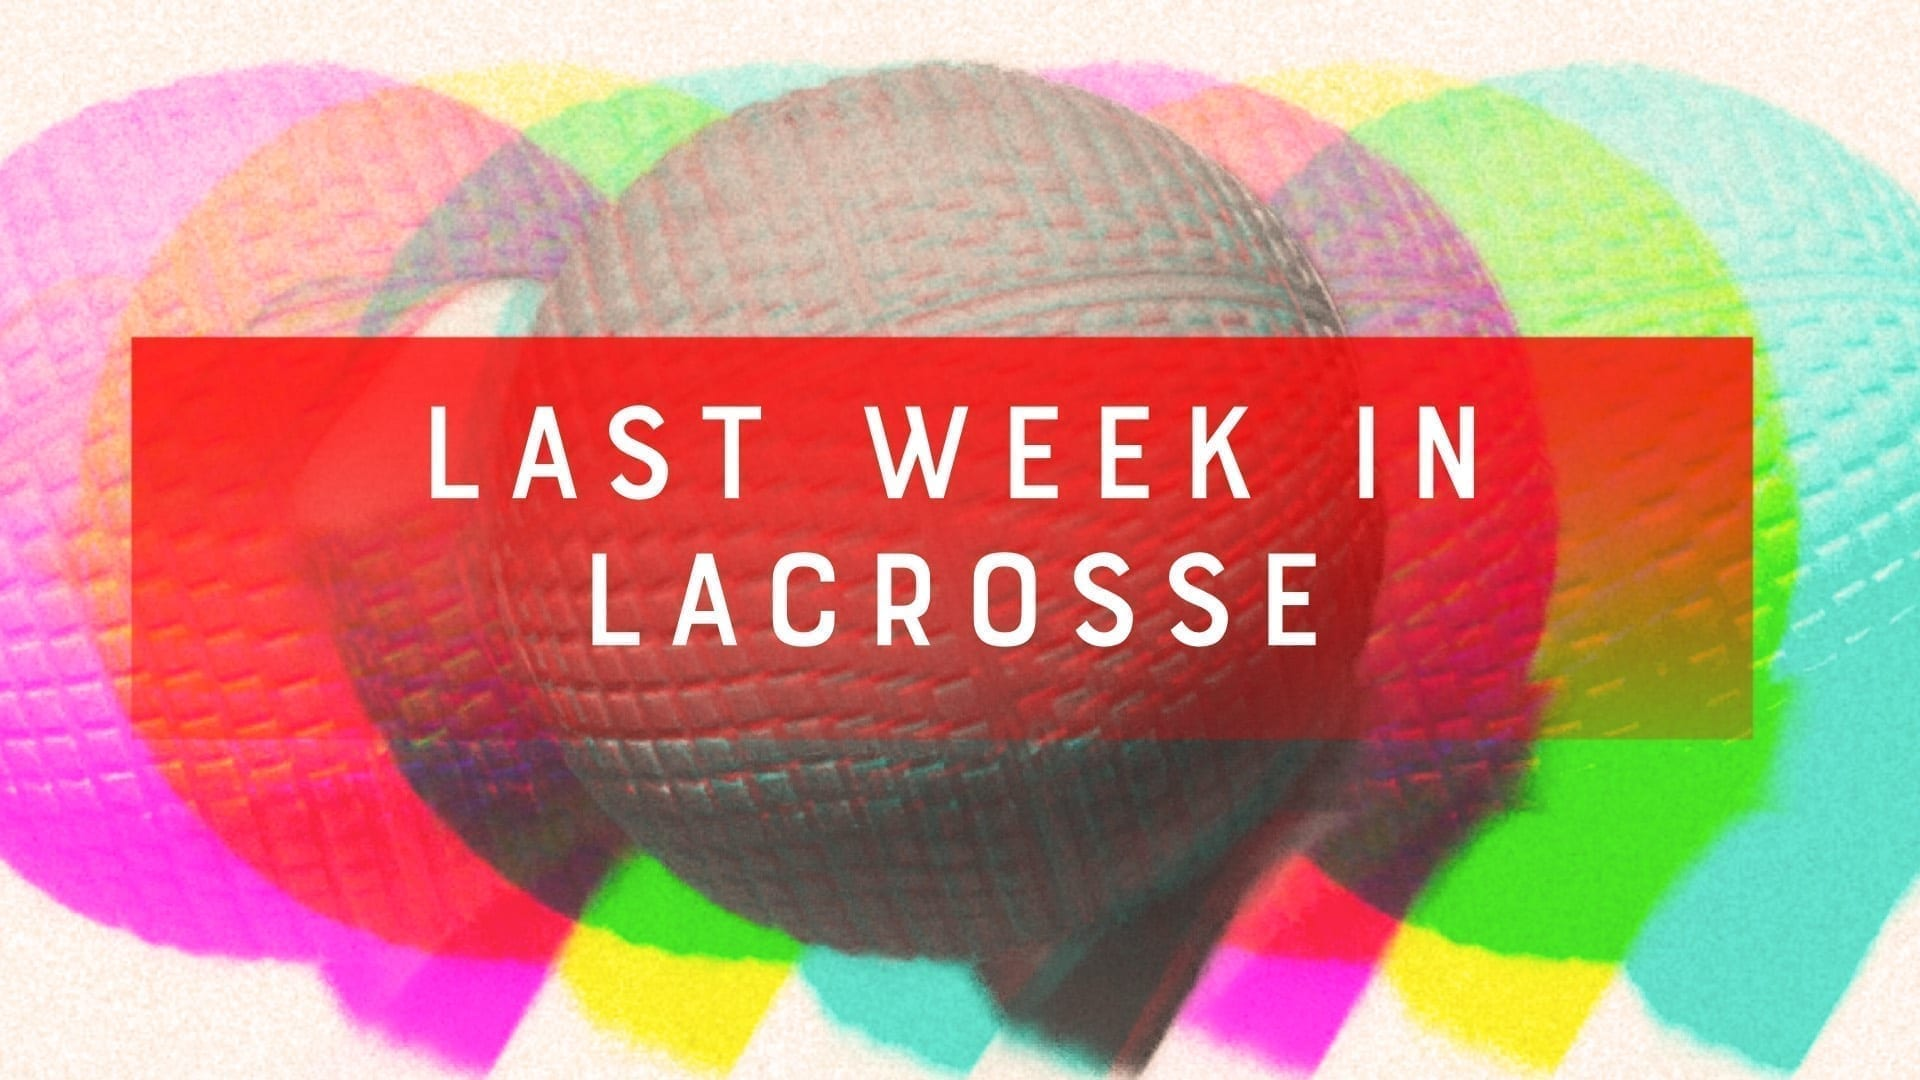 Last Week in Lacrosse - Oct. 12-Oct. 18